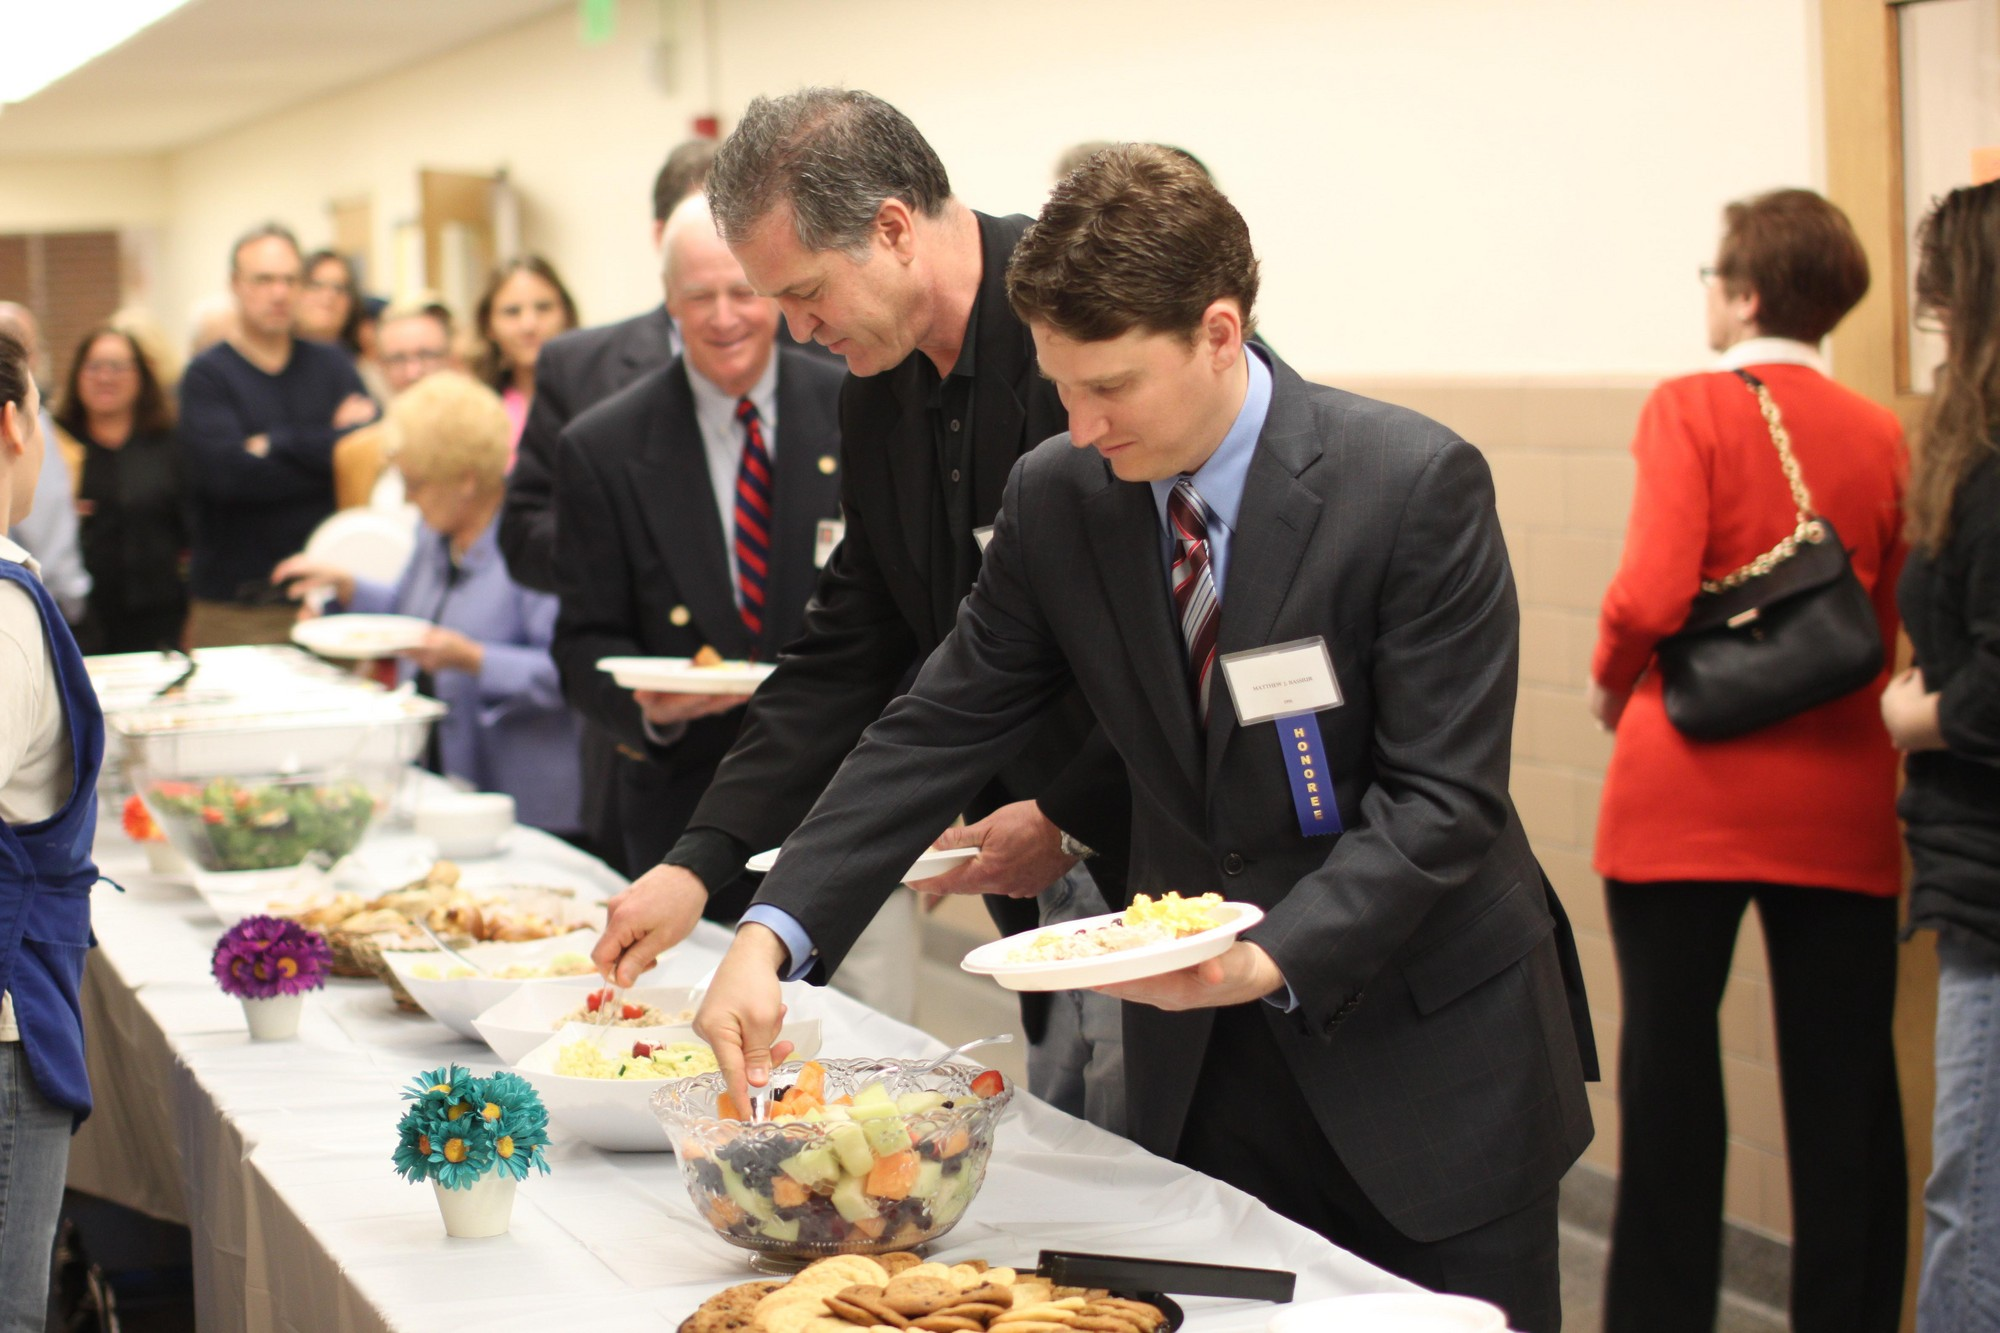 At the induction ceremony brunch, honoree Matthew J. Bassiur added some fruit to his food plate.